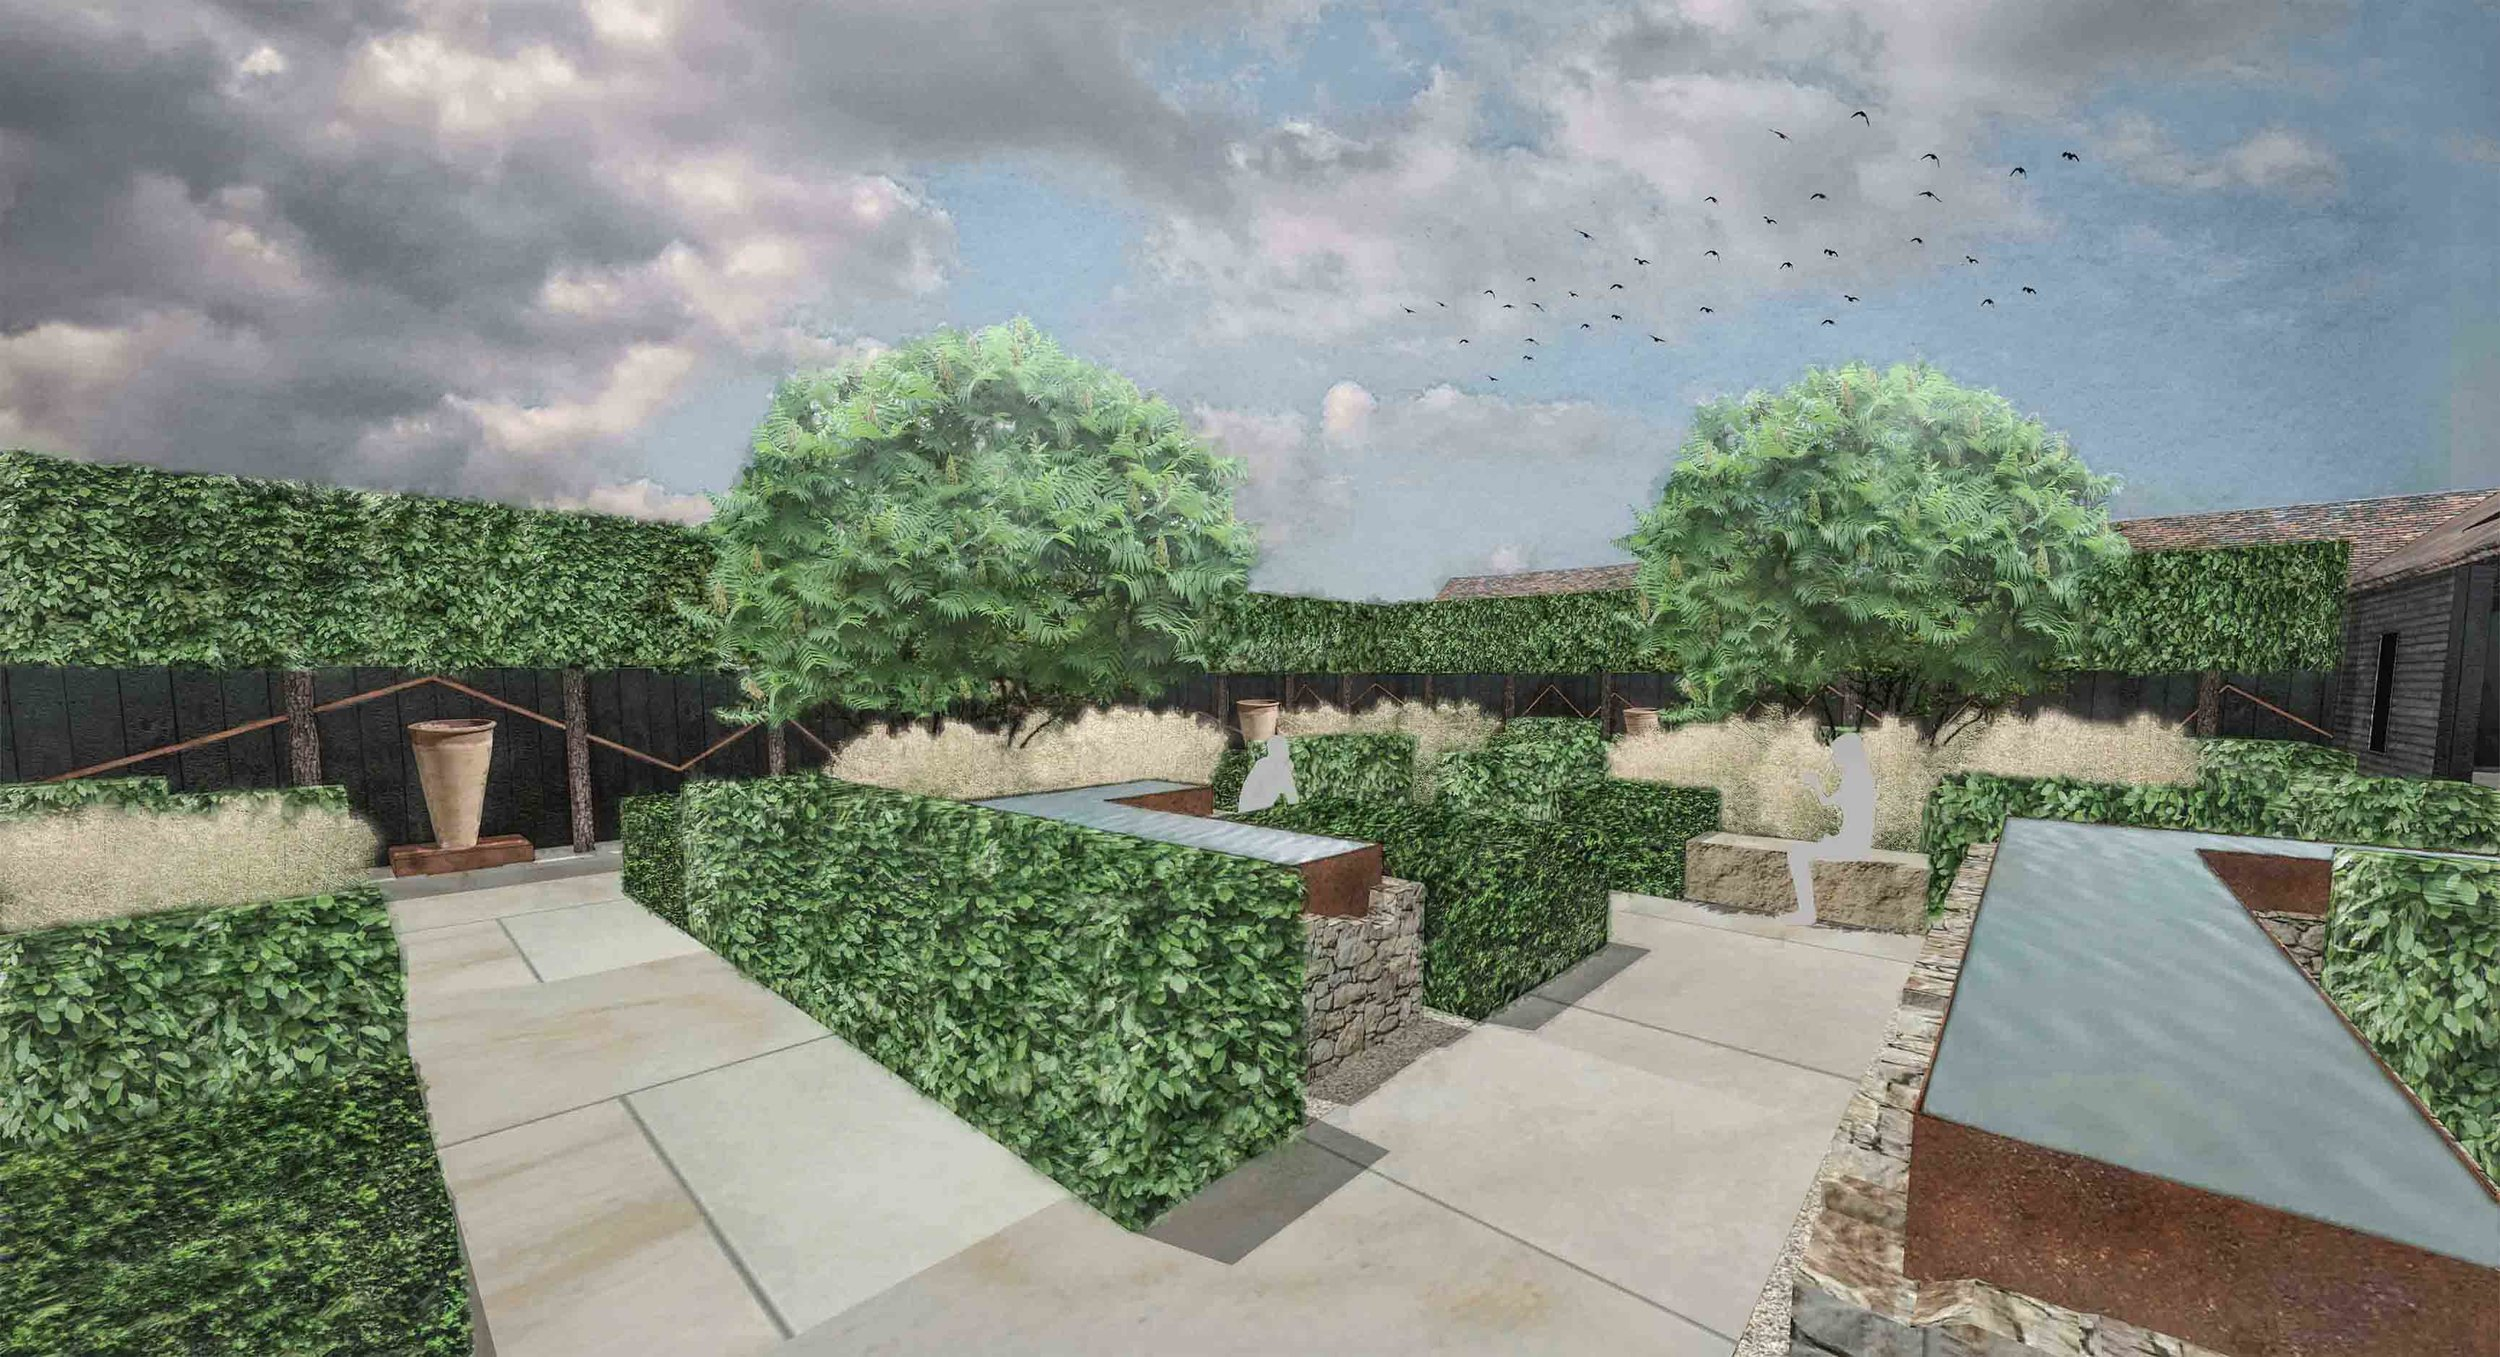 sandstone corten water features pleached trees modern courtyard.jpg